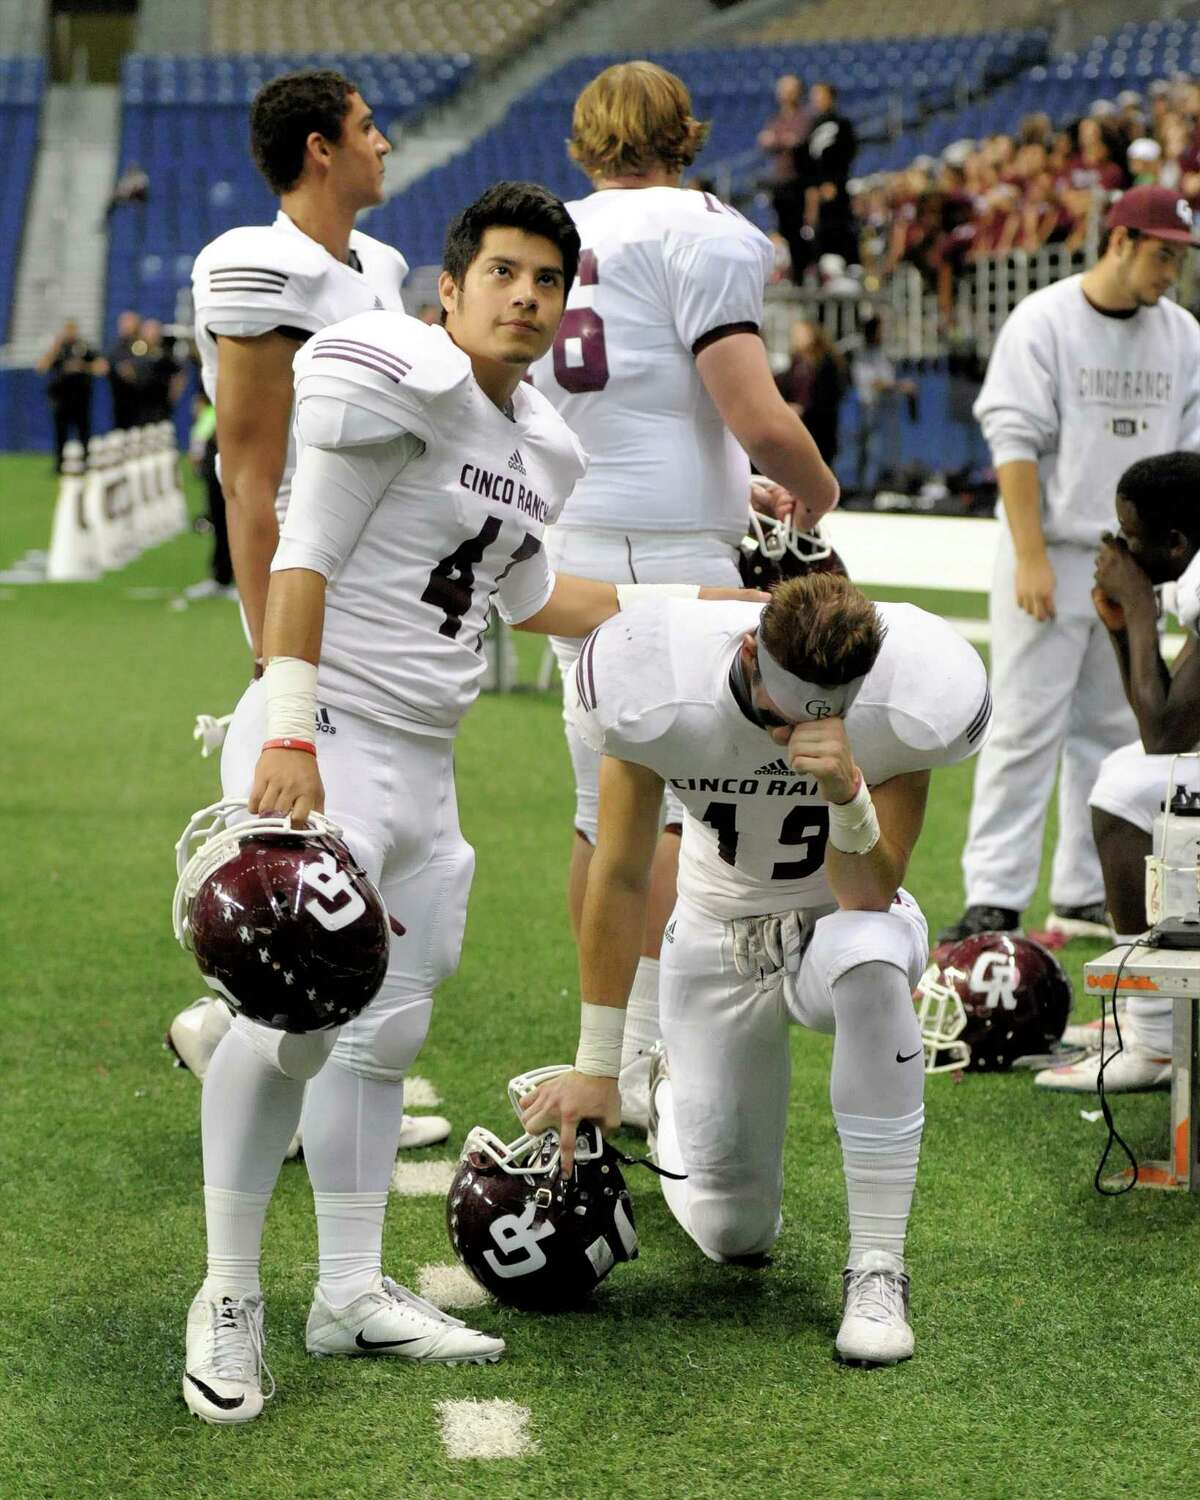 Dec. 10: Cibolo Steele 35, Cinco Ranch 14 Julian Davila (47) of Cinco Ranch consoles Blake Gordon (19) after the Conference 6A Division II State Semi-Final playoff game between the Cinco Ranch Cougars and the Cibolo Steele Knights on Saturday December 10, 2016 at the Alamodome, San Antonio, TX.